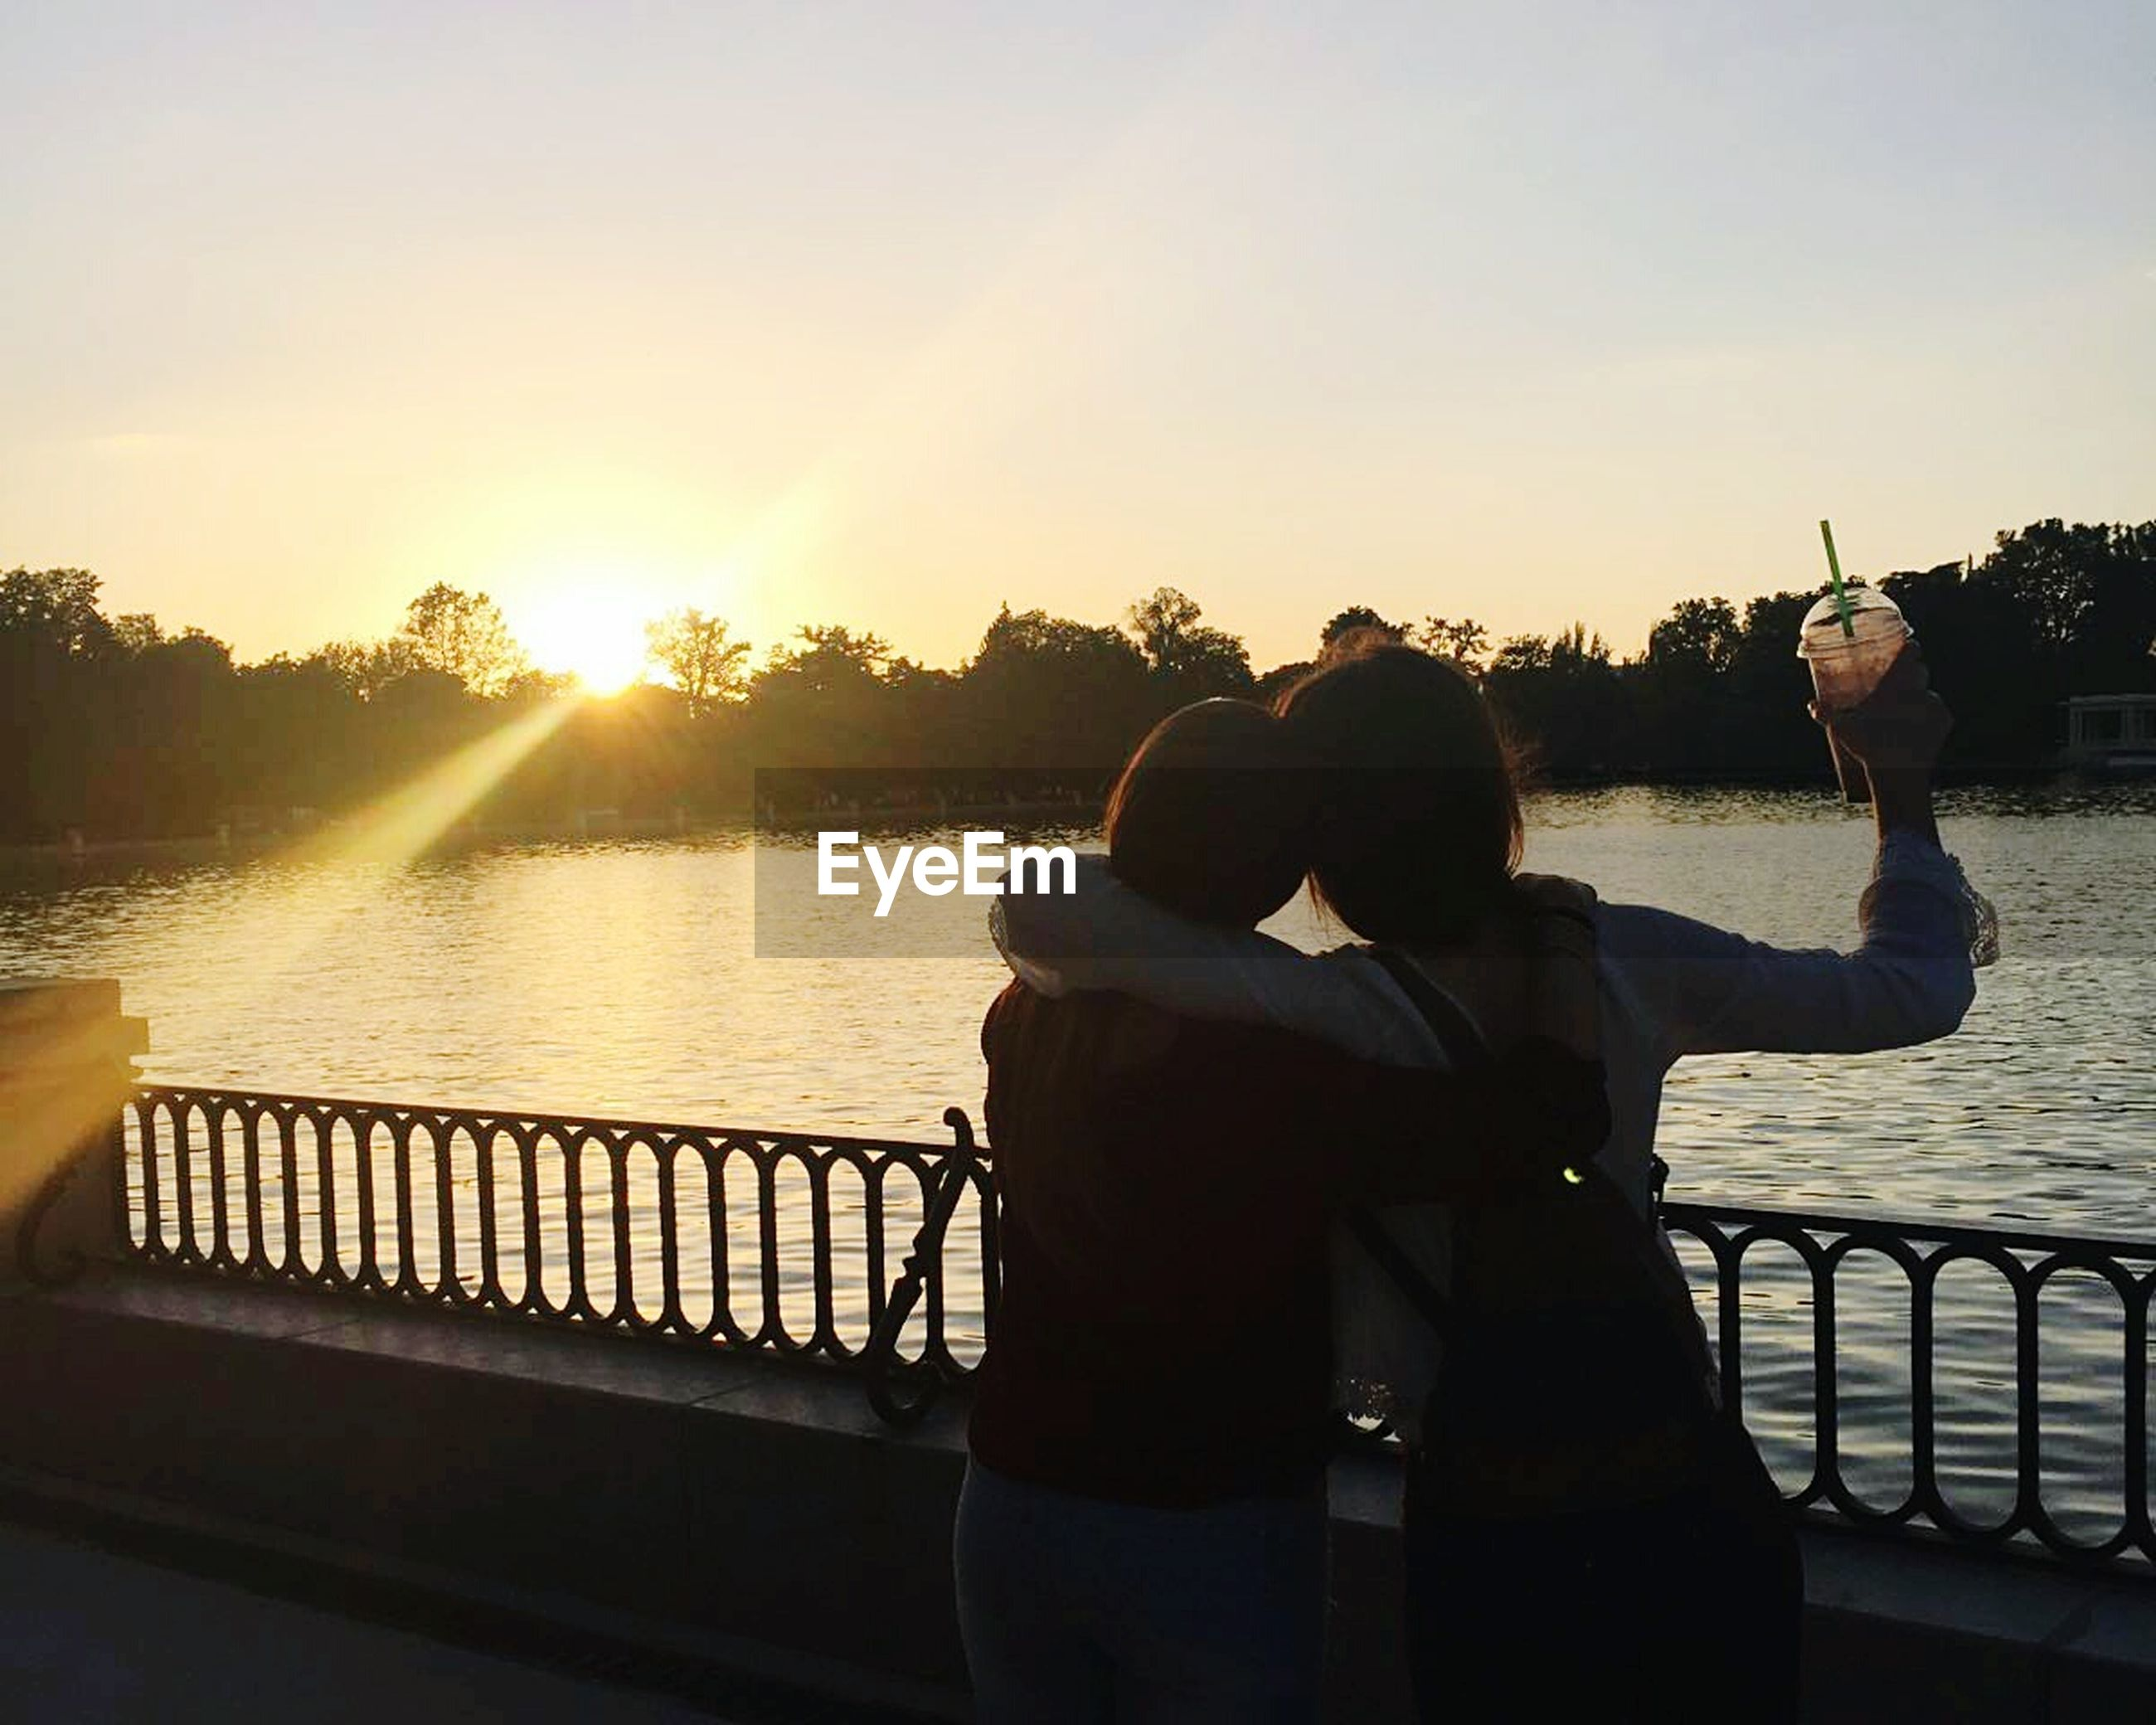 water, rear view, lifestyles, leisure activity, sunset, sun, railing, sitting, clear sky, lake, river, three quarter length, sunlight, standing, men, person, sky